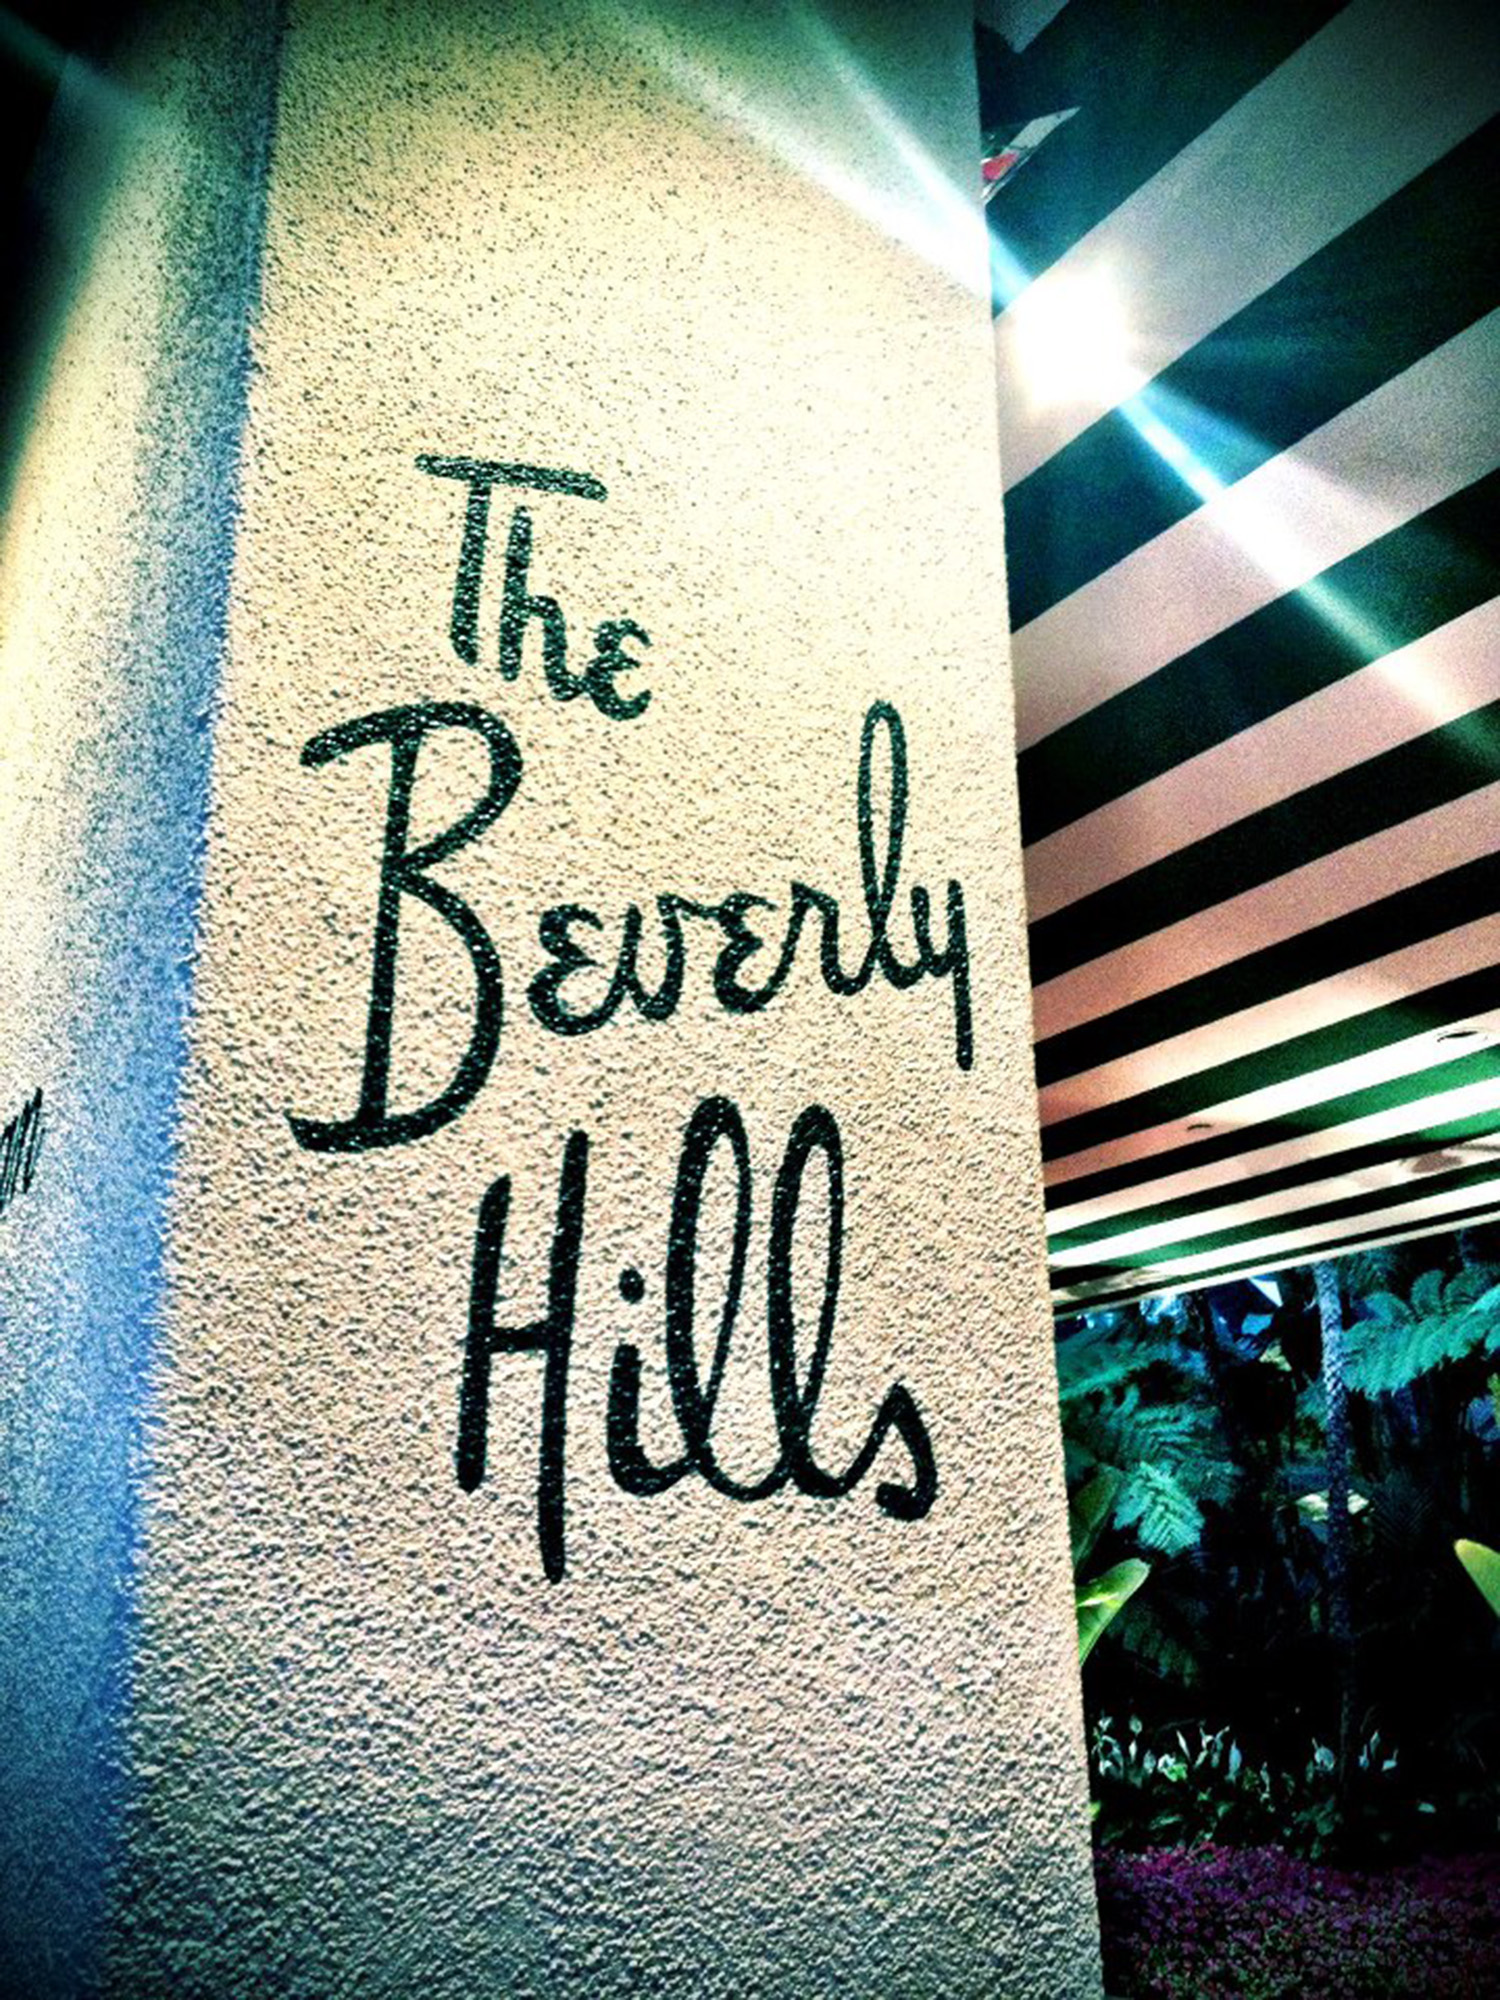 'The Beverly Hills' painted onto a large pole at the Beverly Hills Hotel